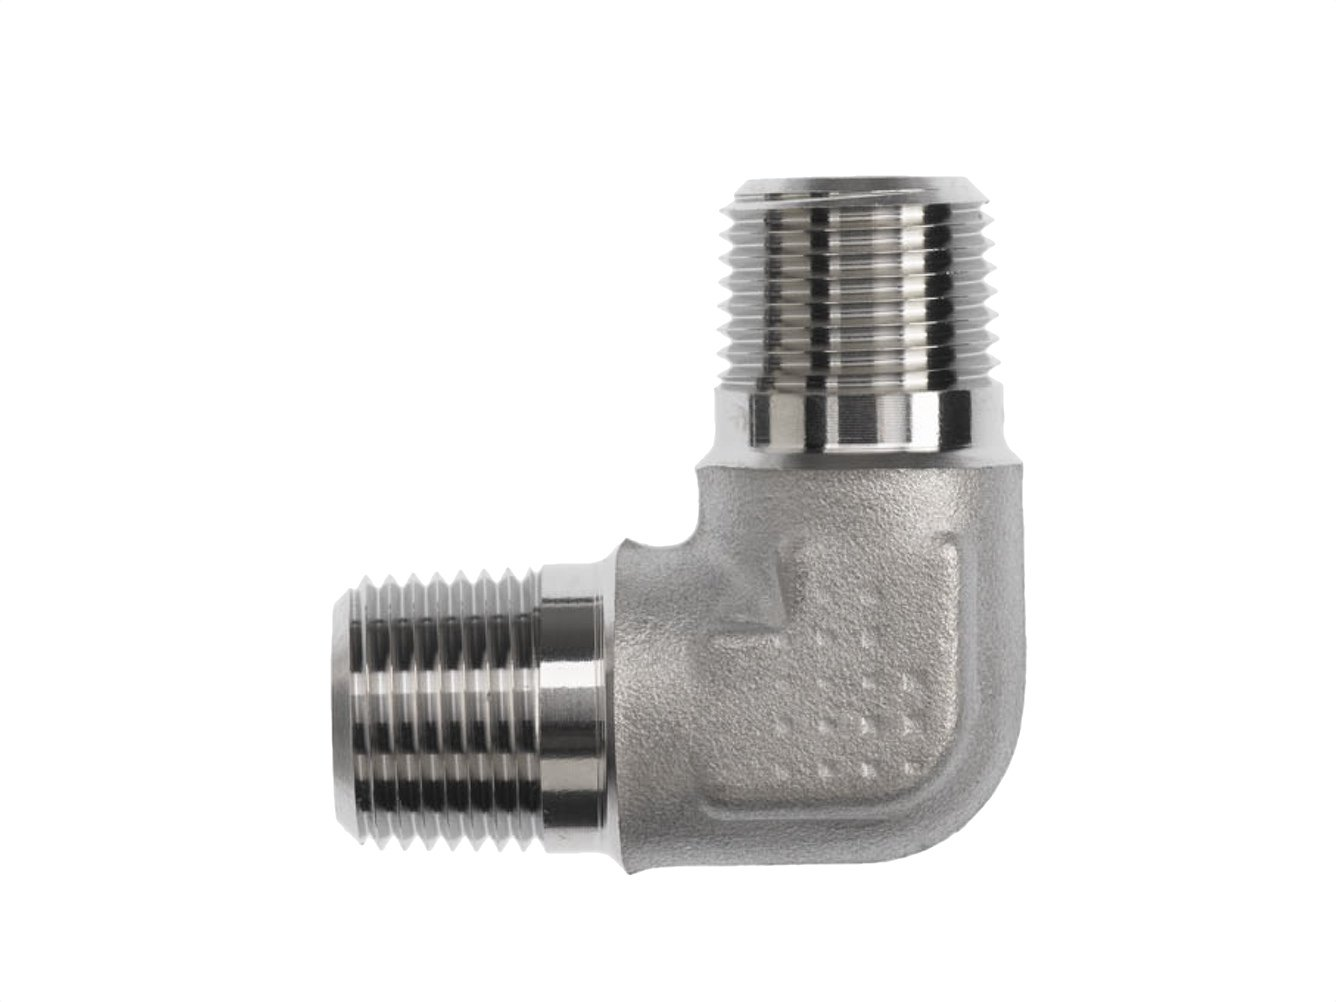 1-11-1//2 x NPTF Male 90 Degree Elbow Brennan 5500-16-16-FG Forged Steel Pipe Fitting